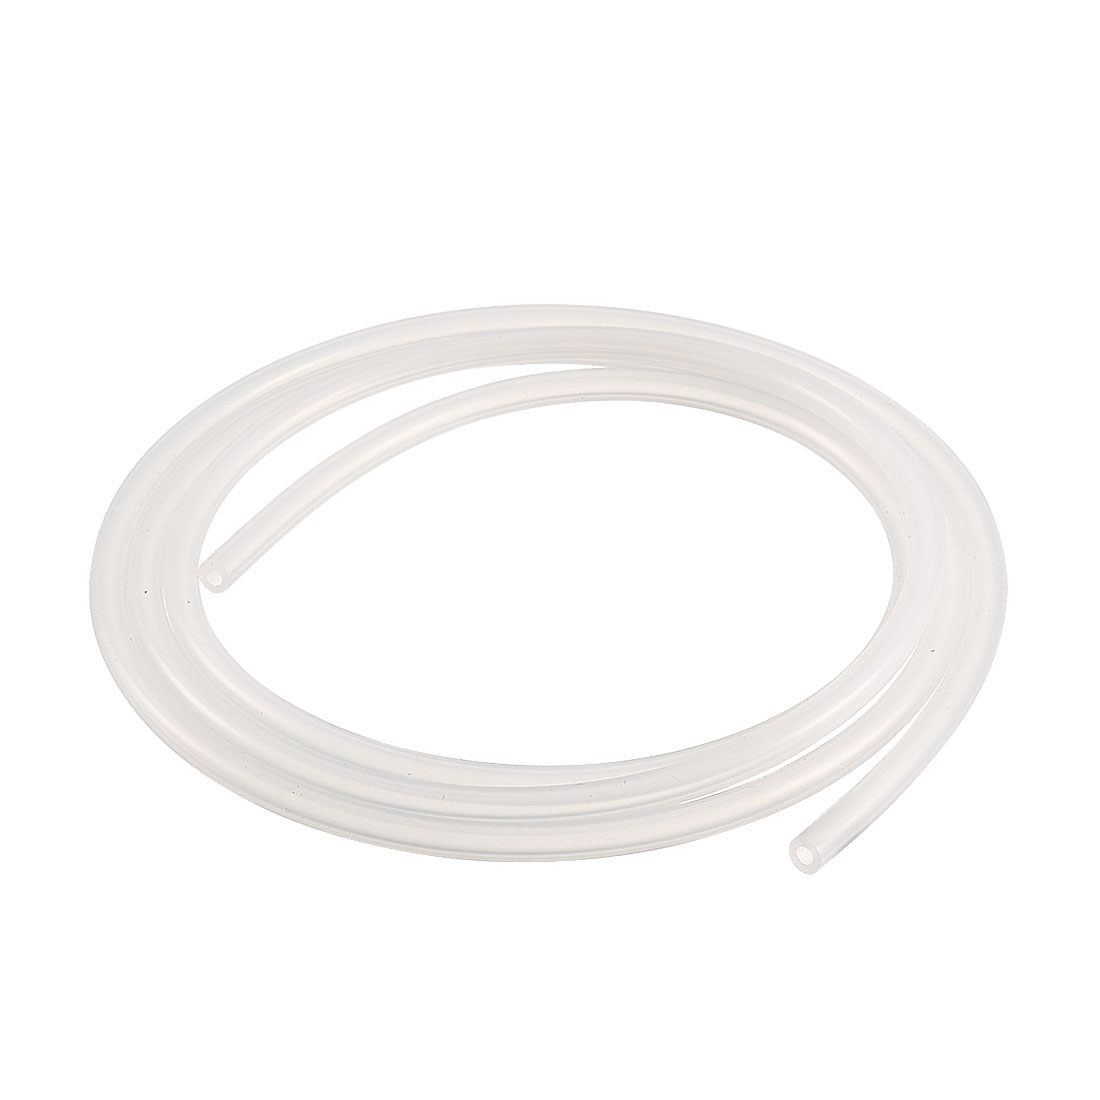 2mm x 4mm Silicone Vacuum Translucent Tube Beer Water Air Pump Hose Pipe 1 Meter Long